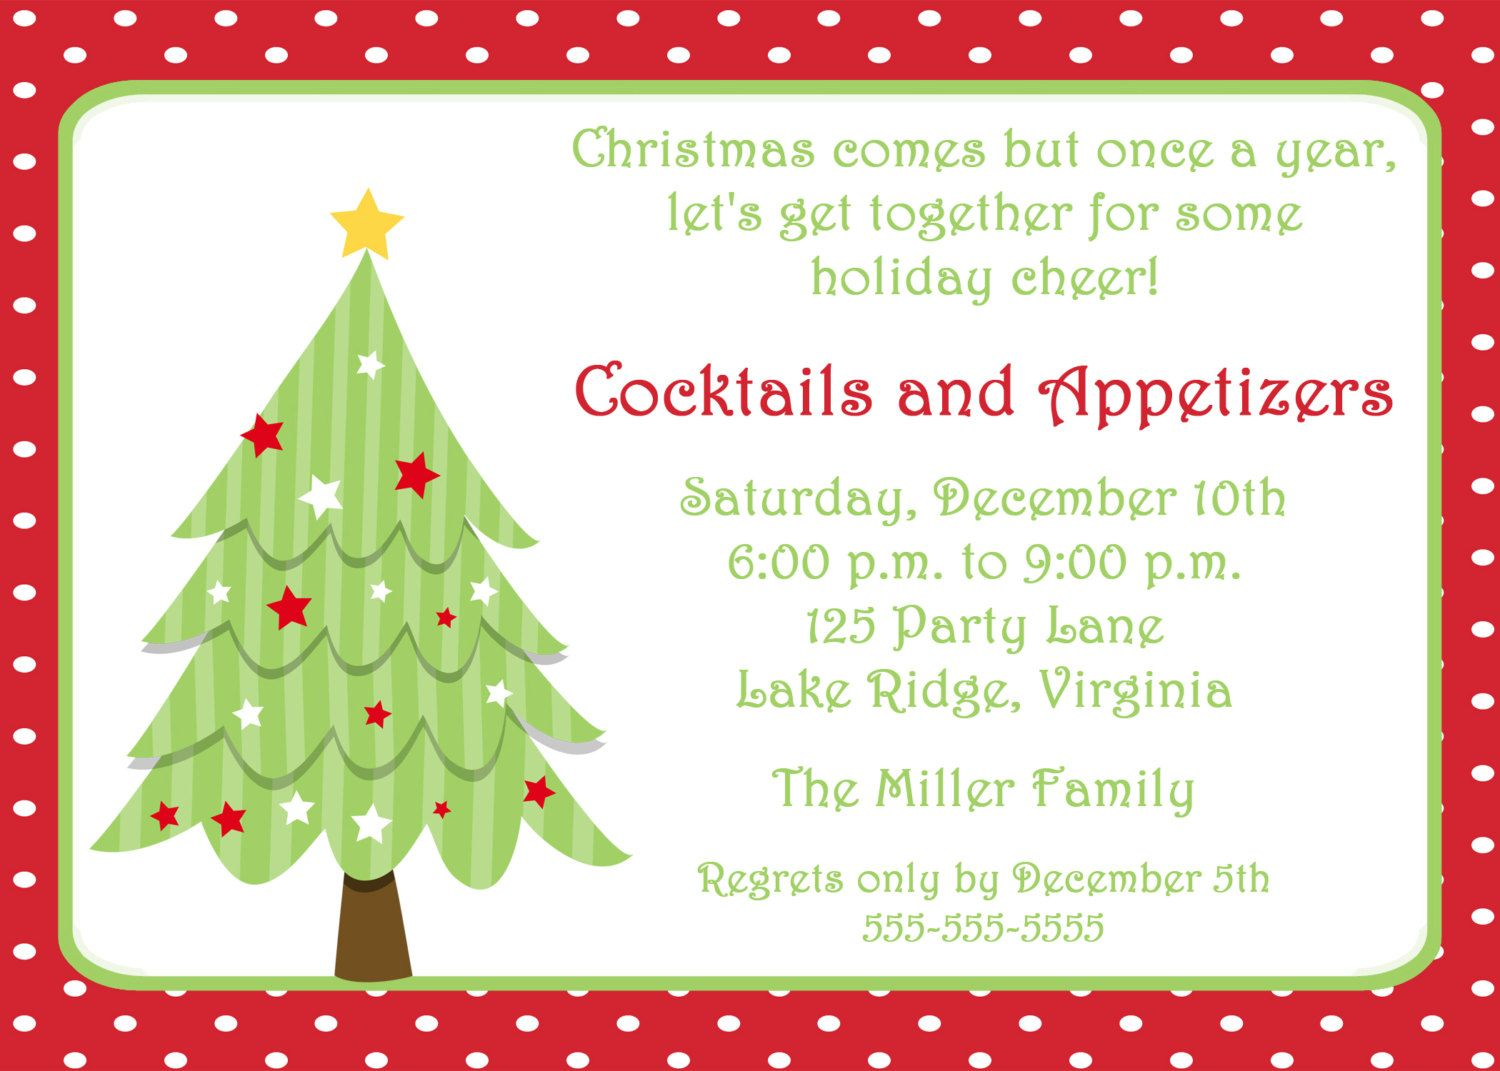 free invitations templates free free christmas invitation templates to print - Free Christmas Party Invitation Templates